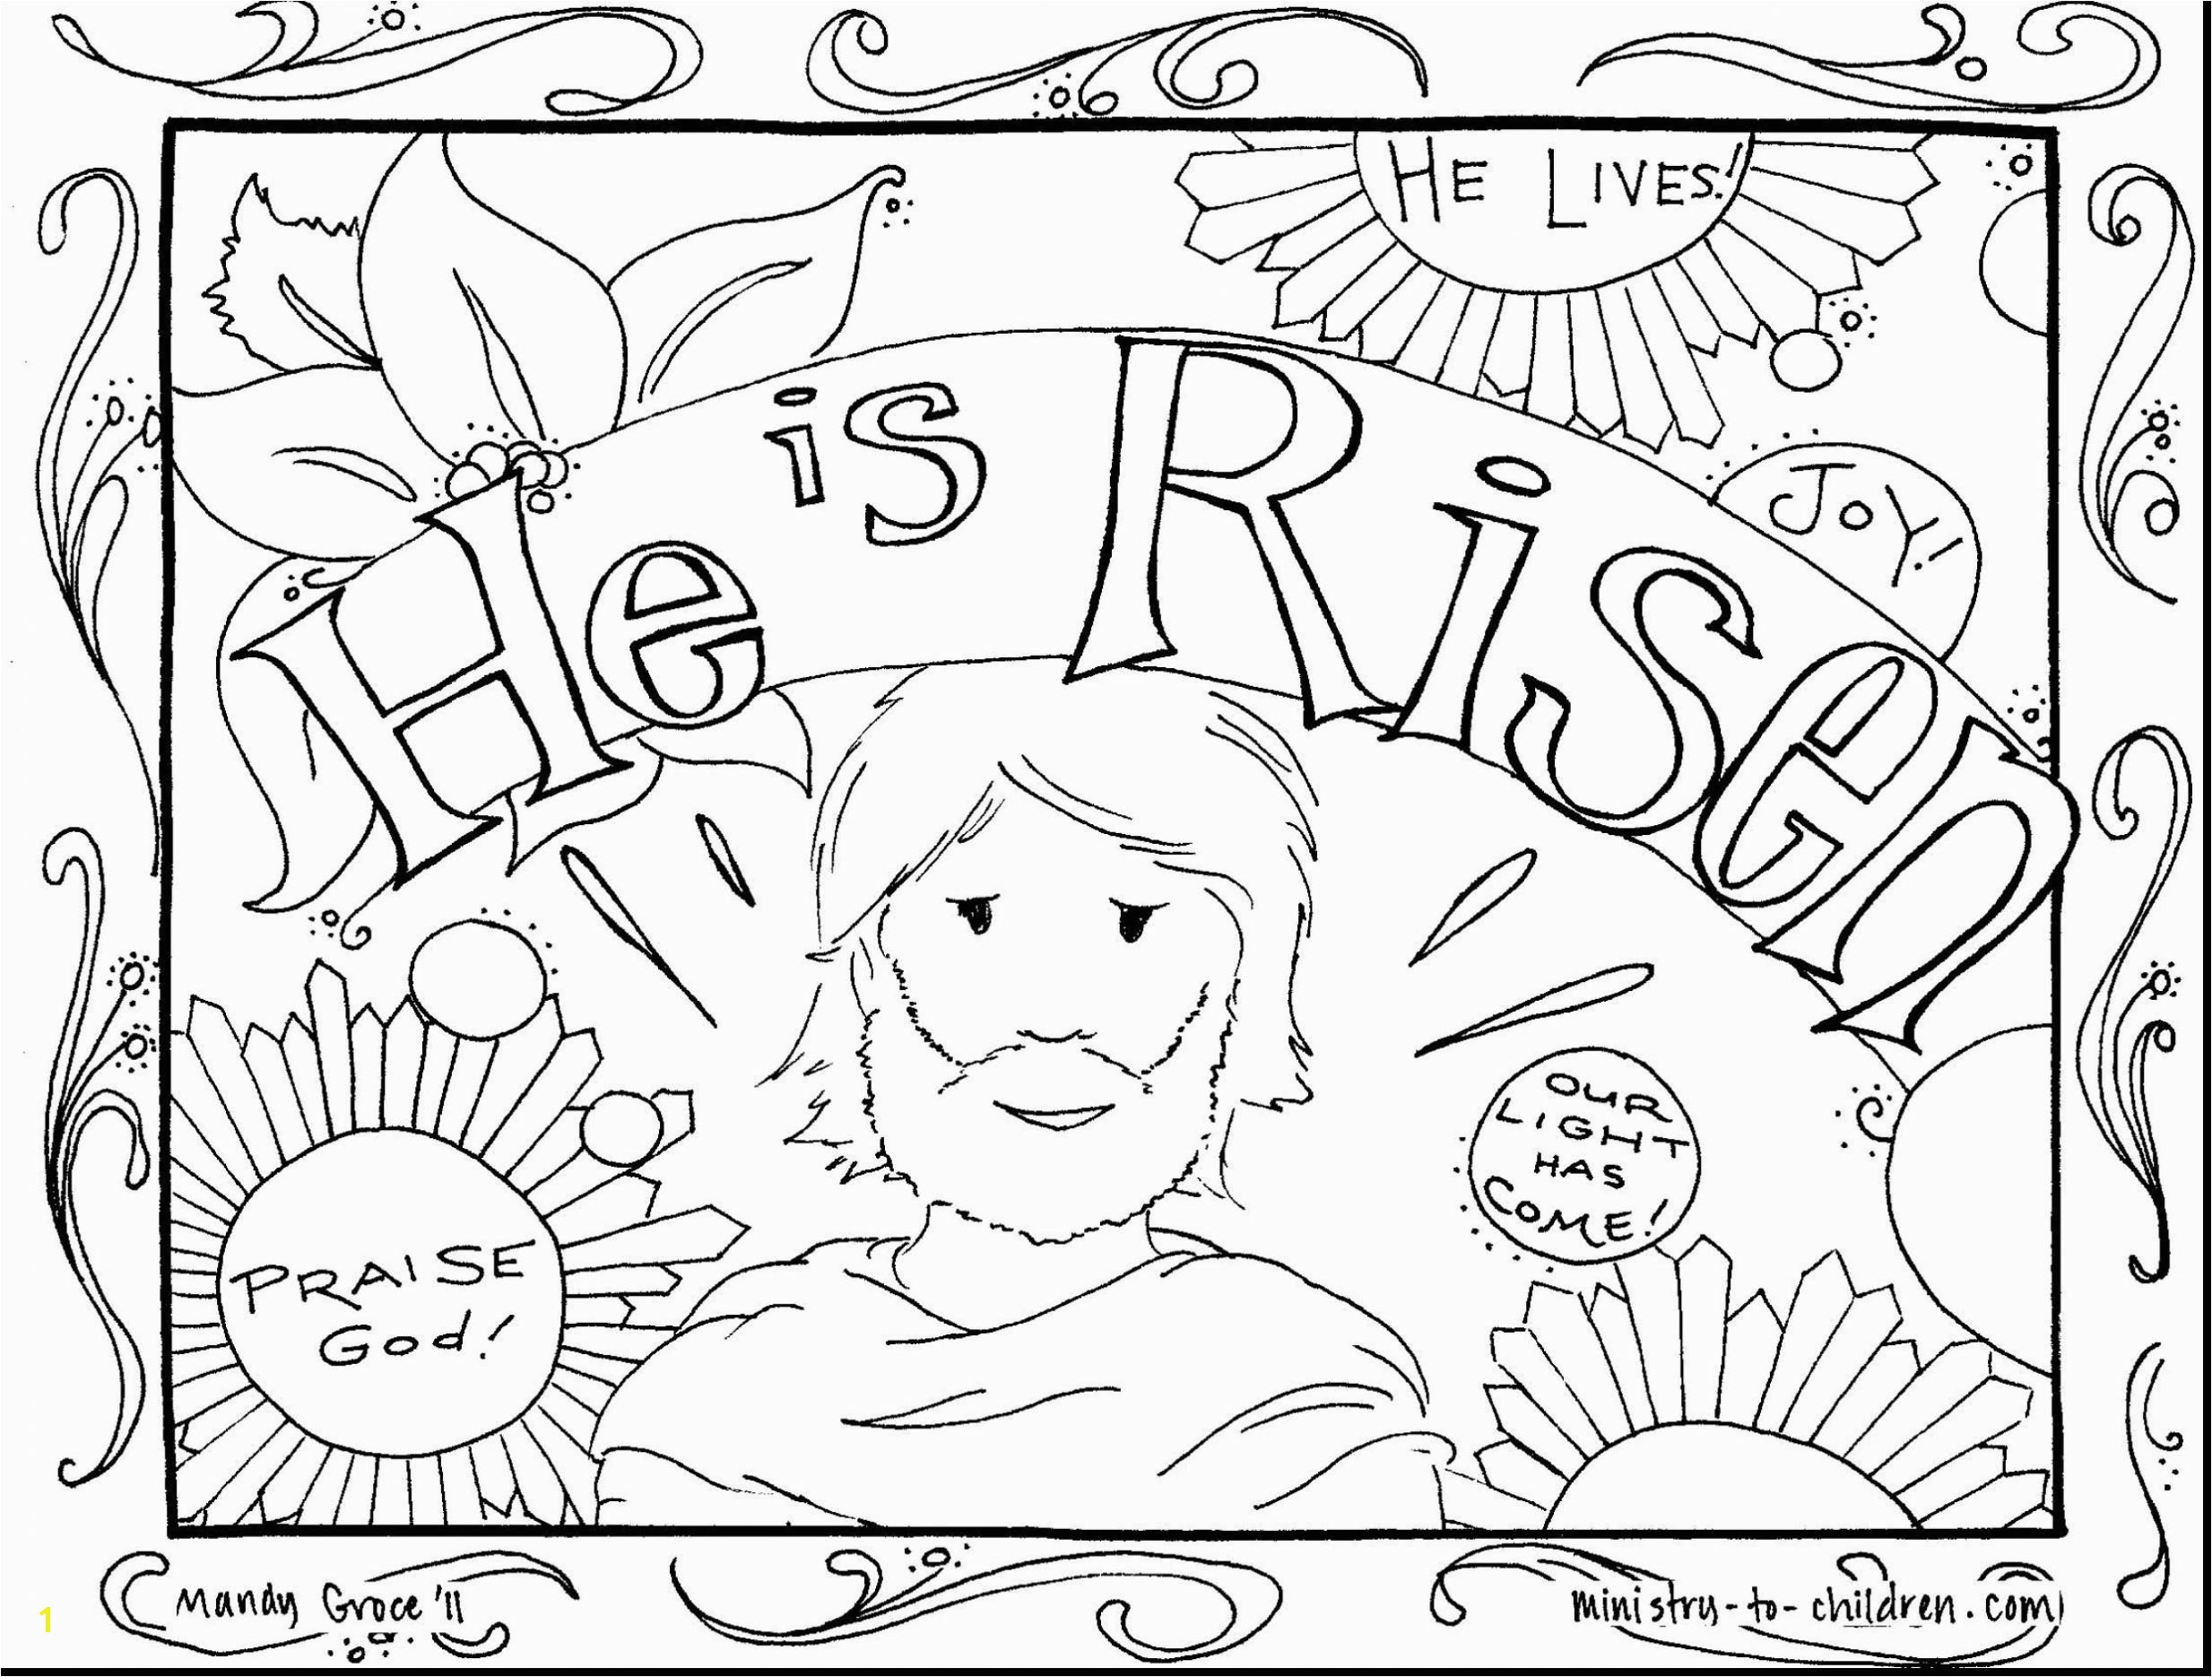 Best Easter Coloring Pages About Jesus Fresh Incredible Easter